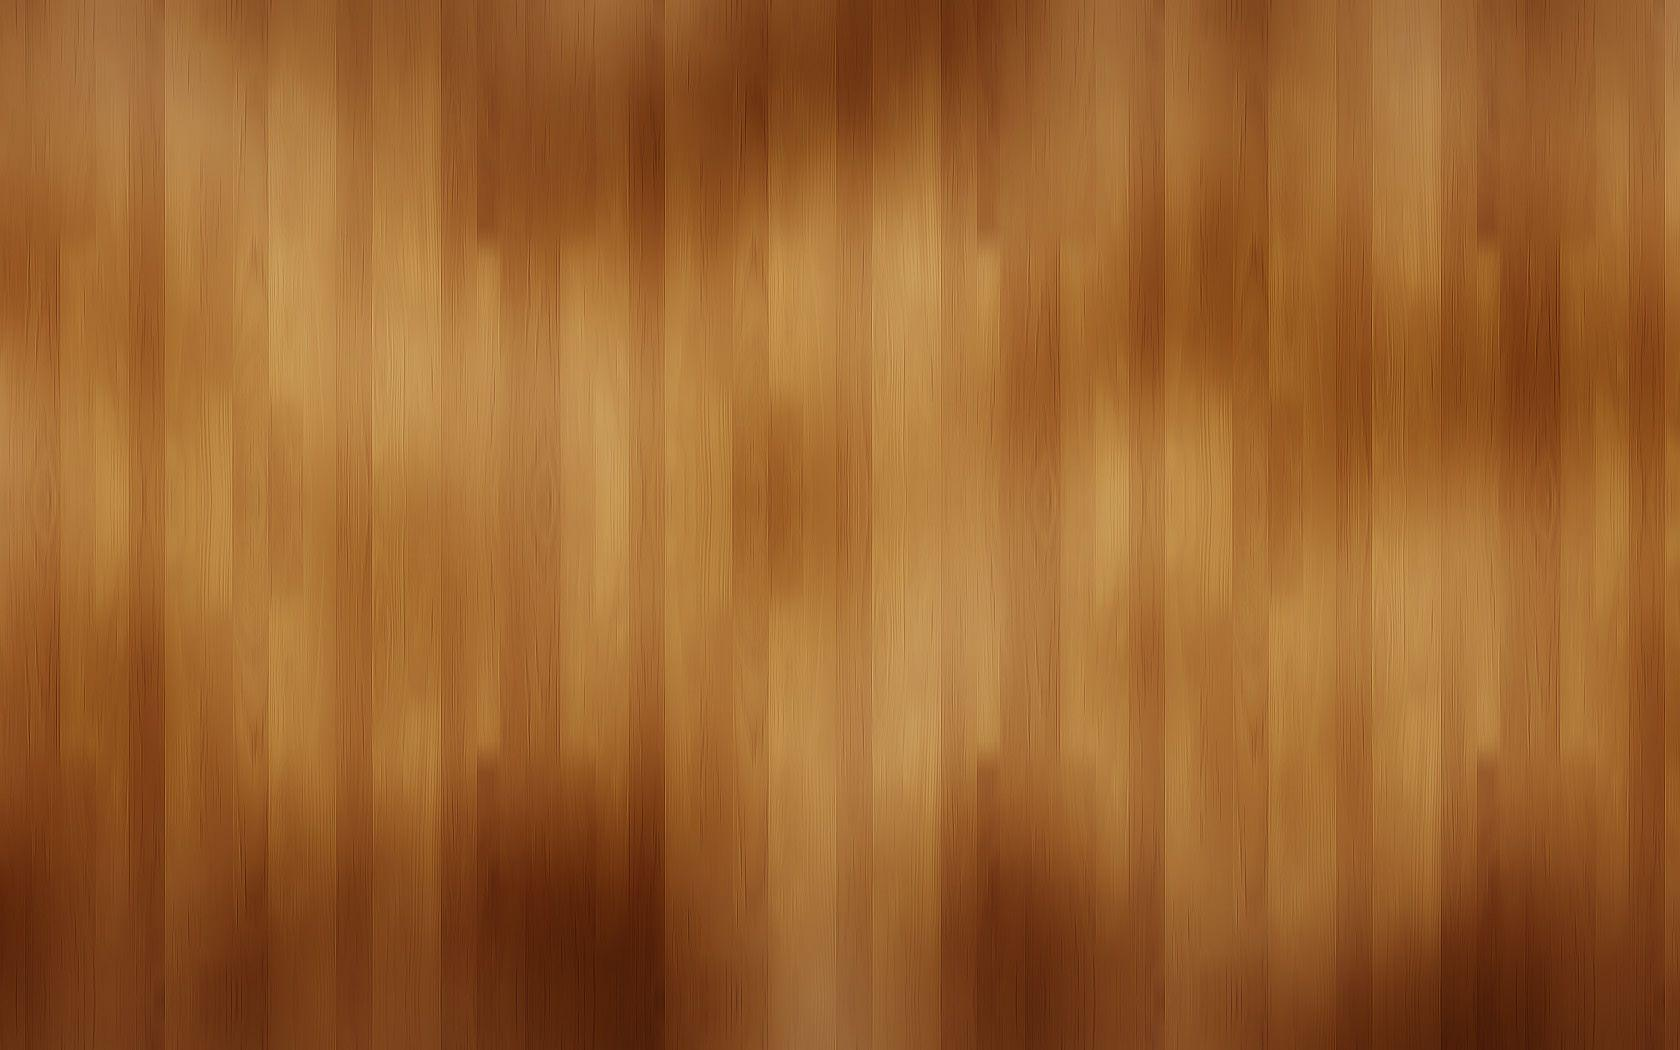 Fantastic Wood Computer Wallpapers Desktop Backgrounds  1920x1200